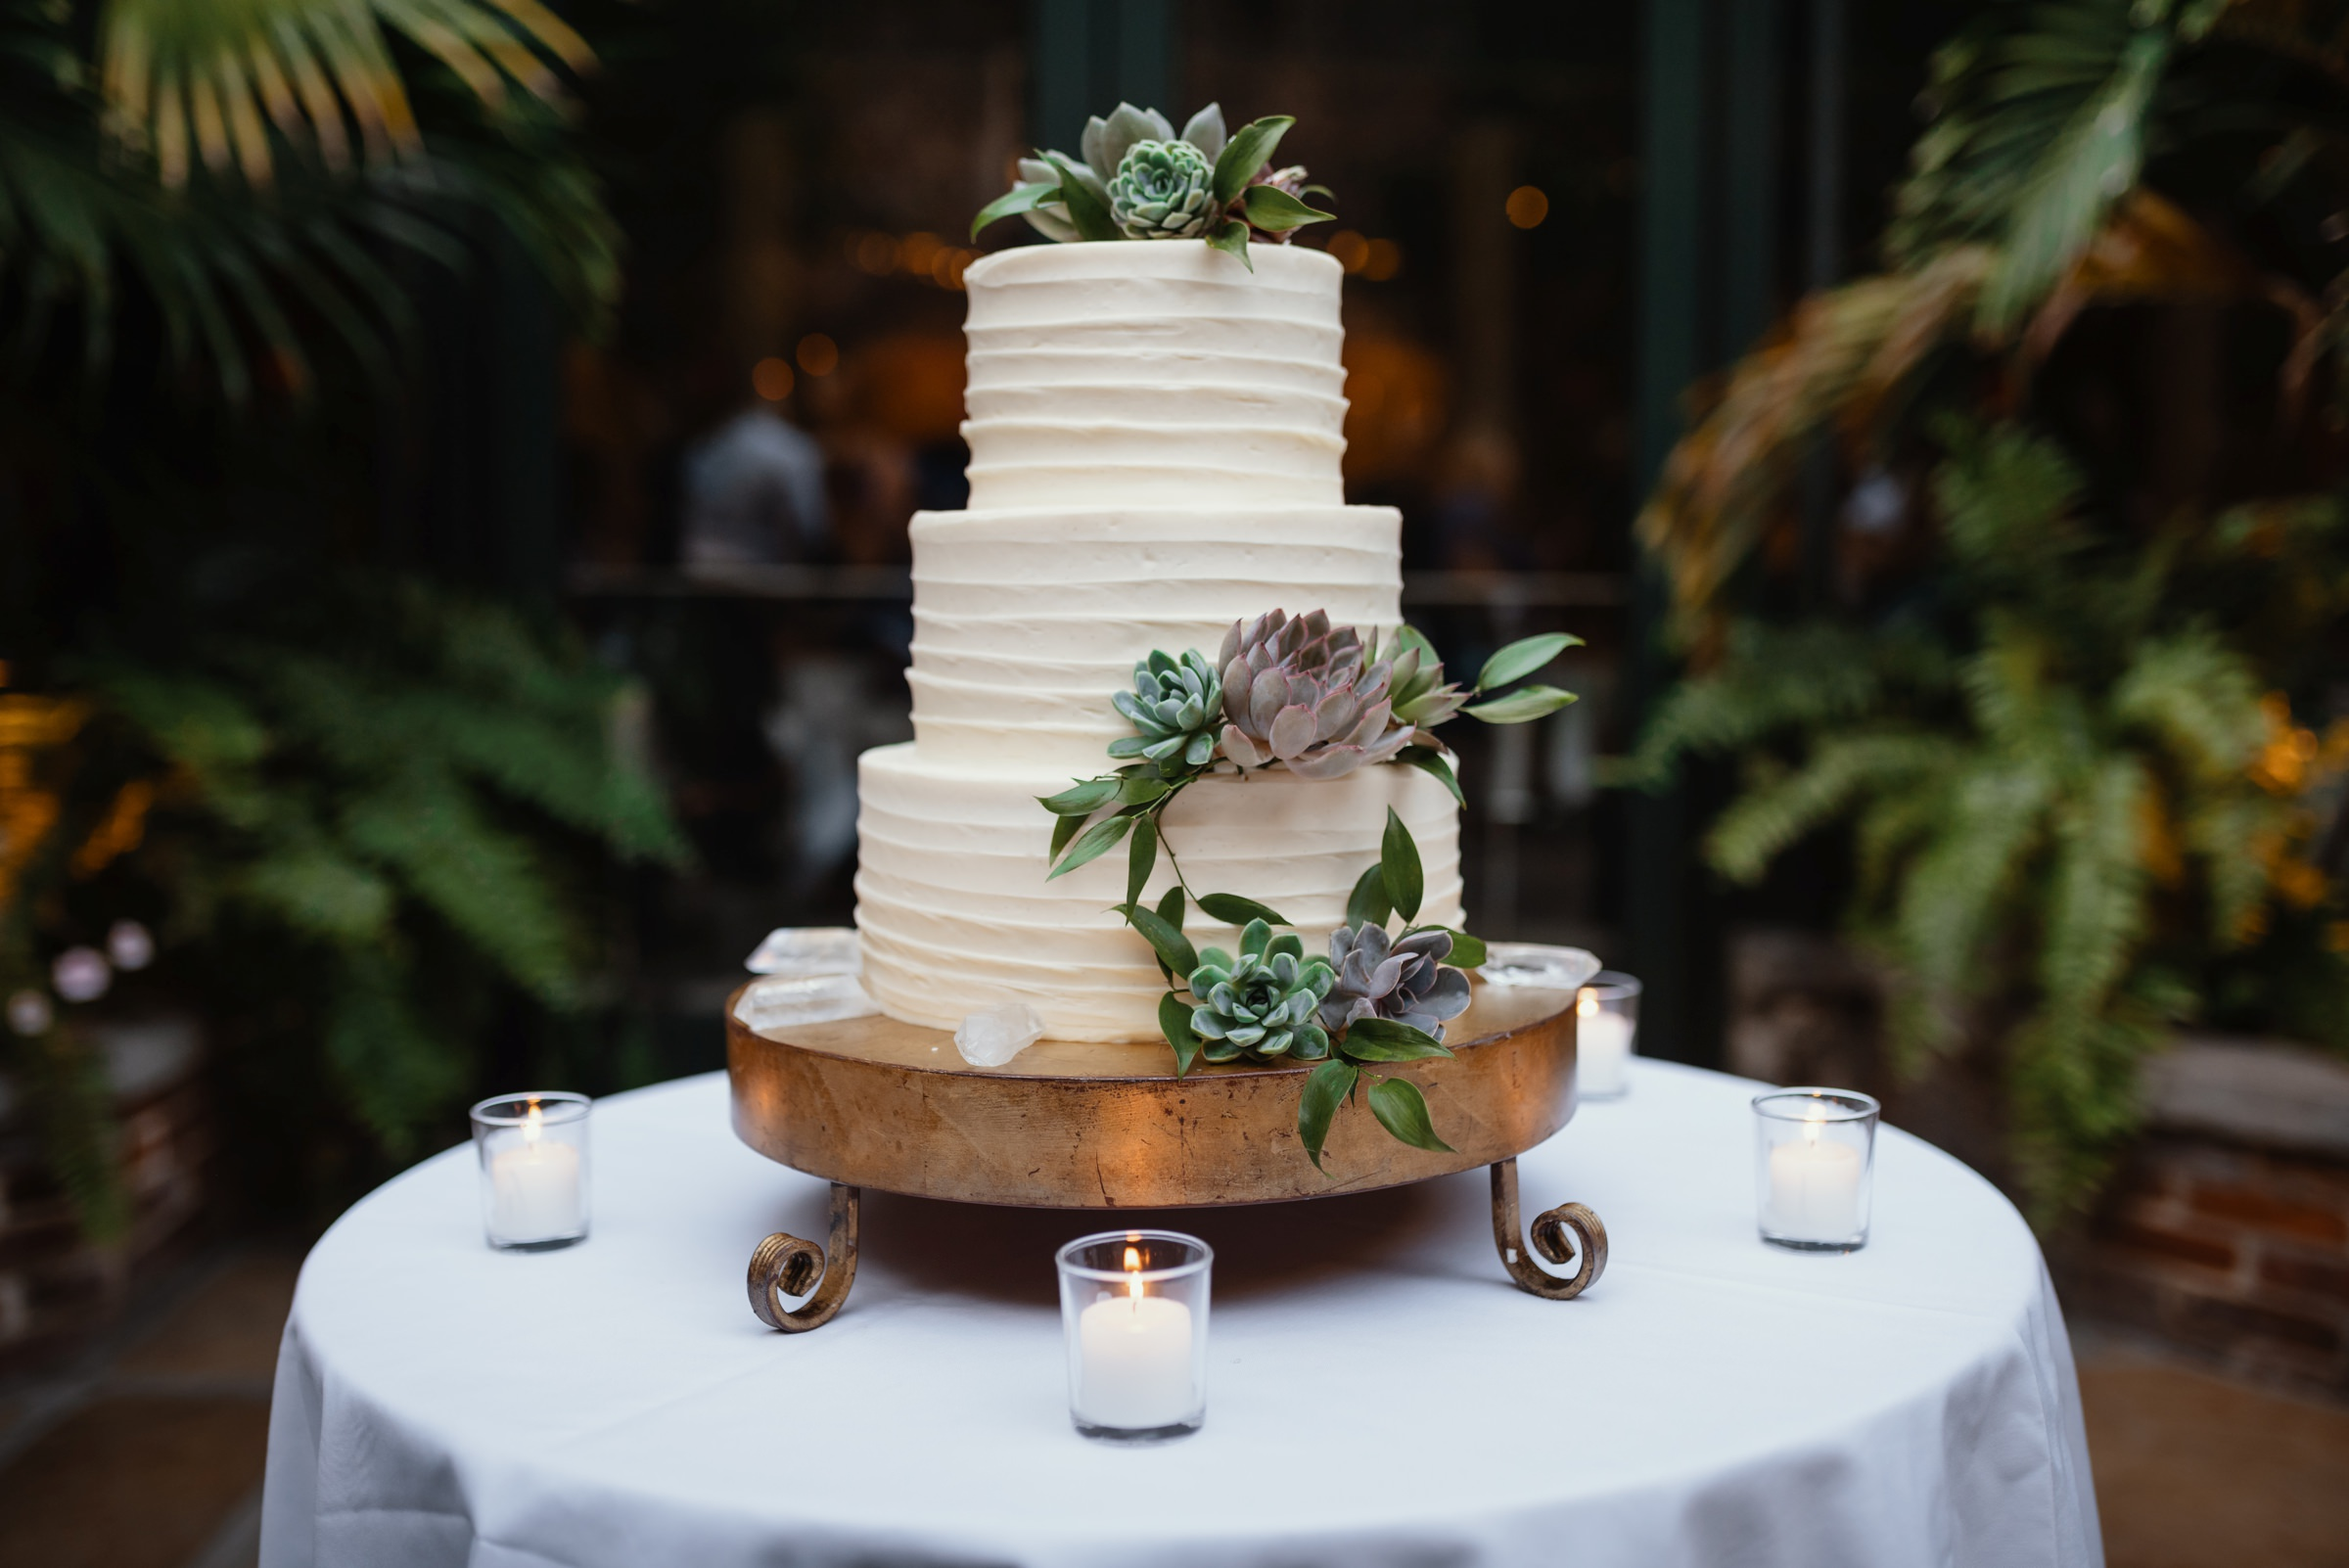 Three tiered cake  on gold platter with succulents and candles - photo by Dark Roux